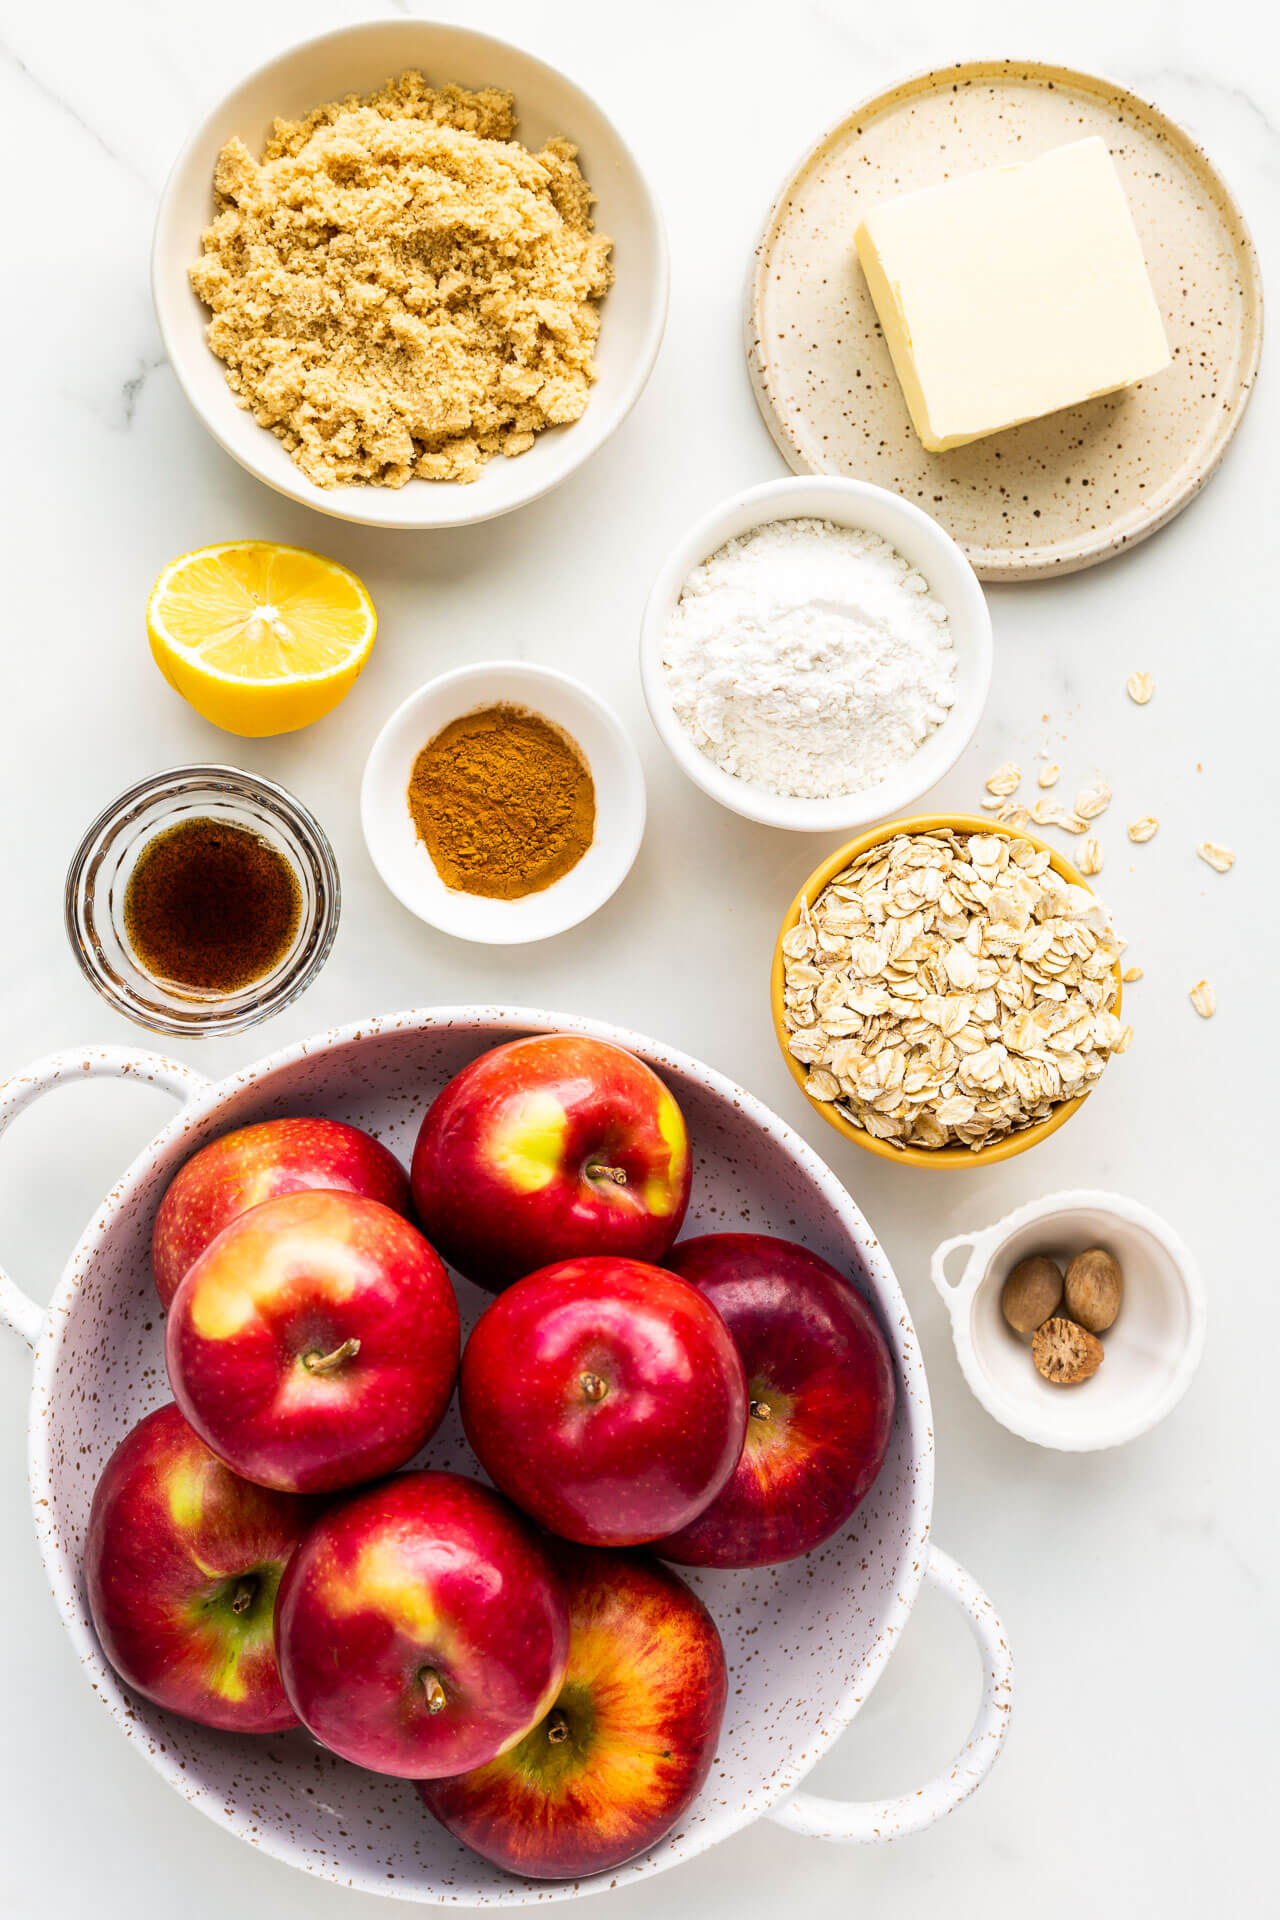 Ingredients to make apple crisp measured out including apples, brown sugar, butter, flour, oats, cinnamon, nutmeg, vanilla bean paste, and a little lemon juice for the apples